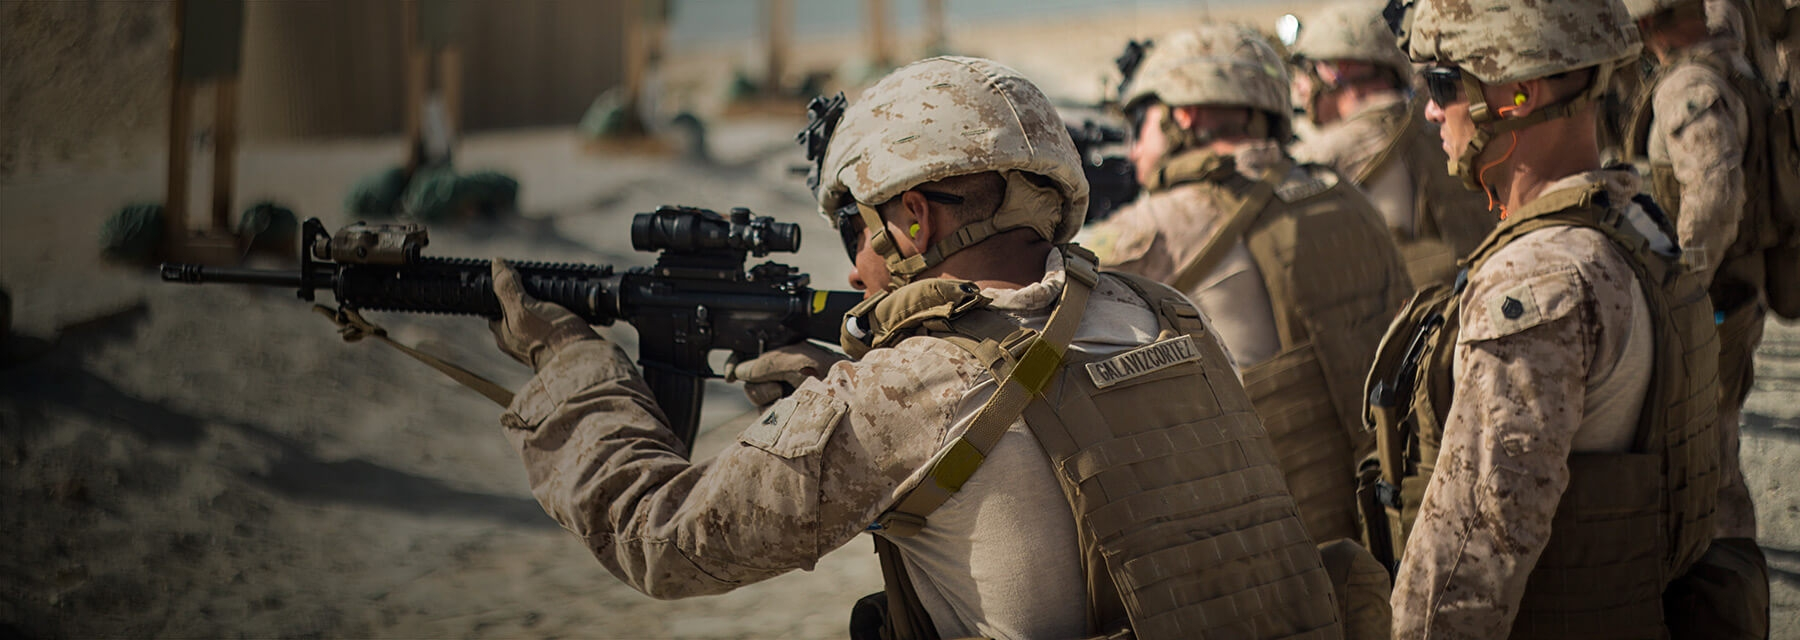 Marines participate in live fire training with assault rifles on a firing range.